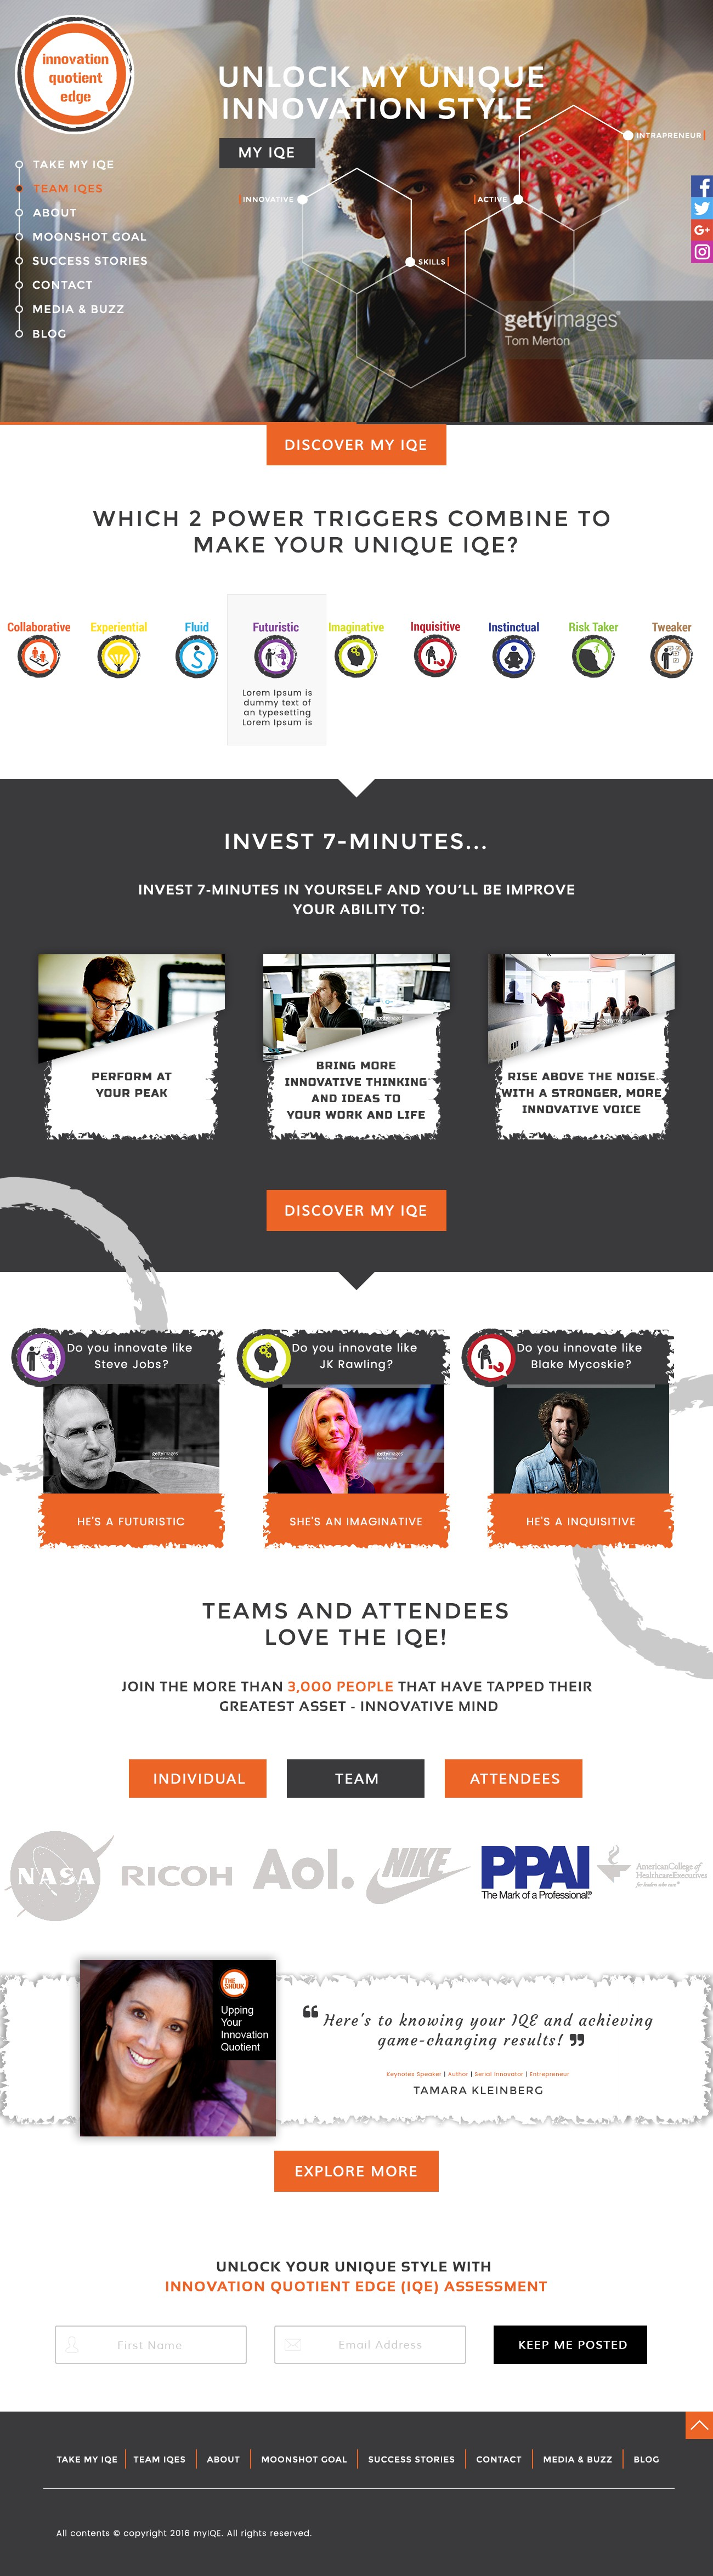 DESIGN WEB HOME PAGE FOR ON-LINE INNOVATION PERSONALITY ASSESSMENT TOOL